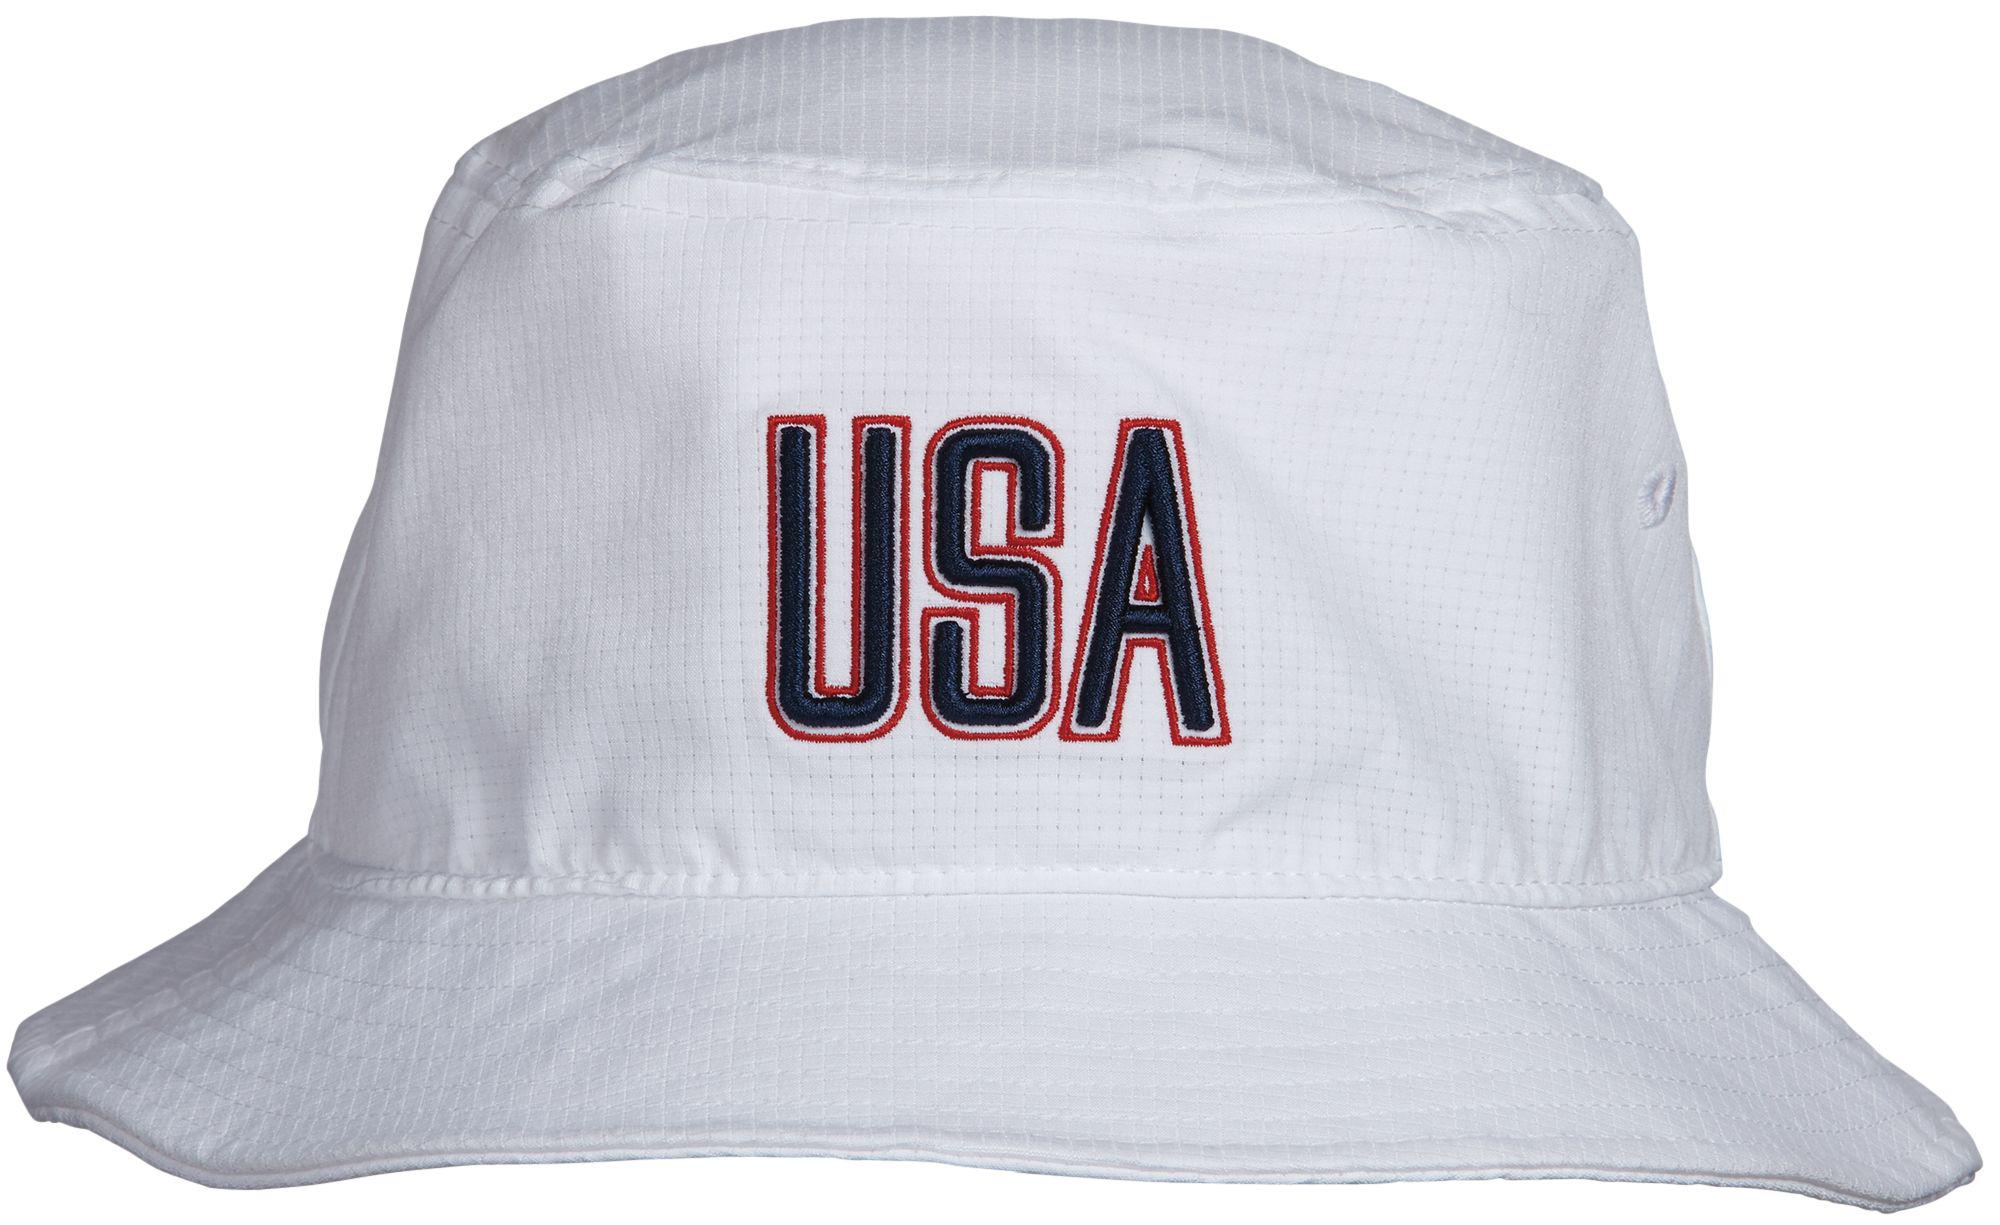 9f7434ba782 Lyst - Under Armour Armourvent Usa Bucket Hat in White for Men